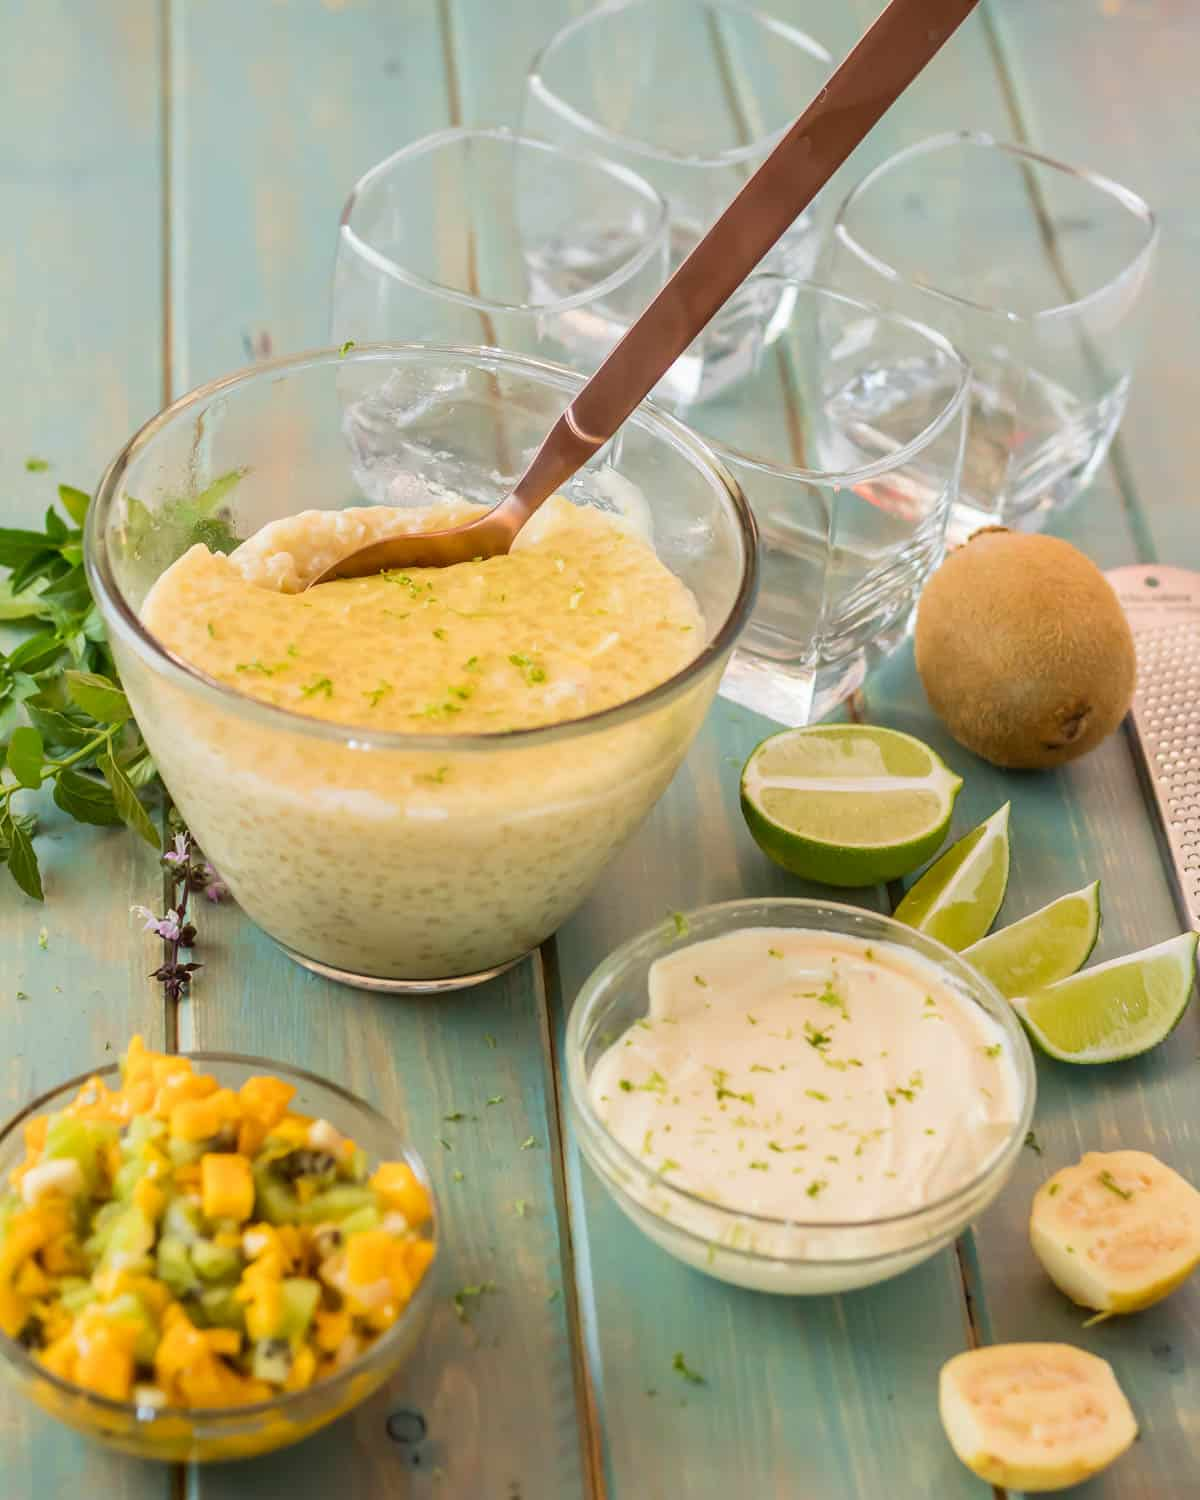 Tropical Tapioca Parfaits with Mango and Mascarpone - all of the ingredients for the tropical parfaits ready to assemble...